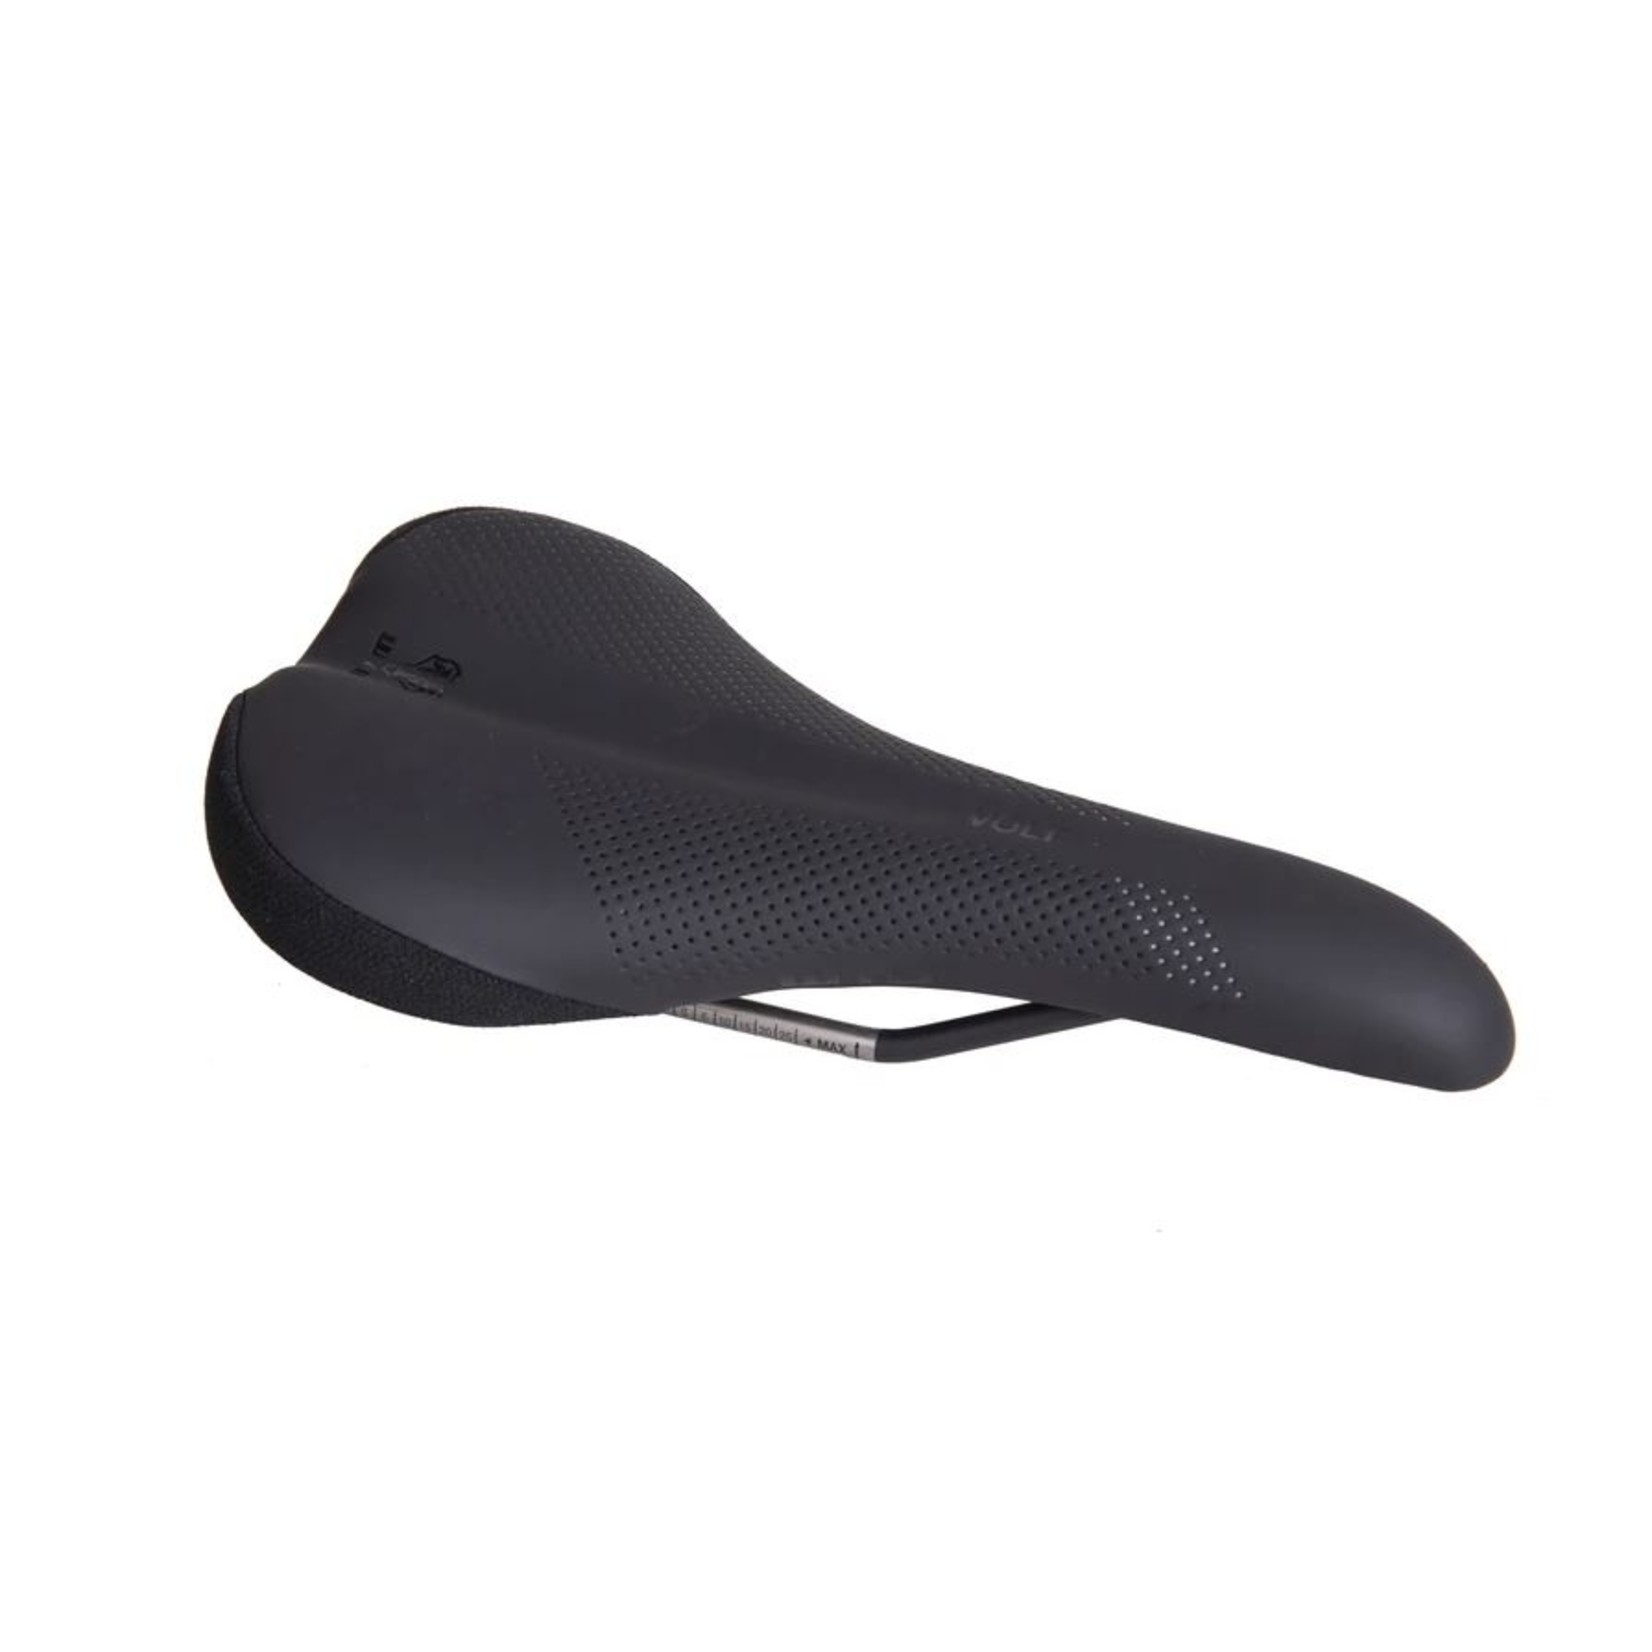 WTB WTB Volt Steel Saddle Wide